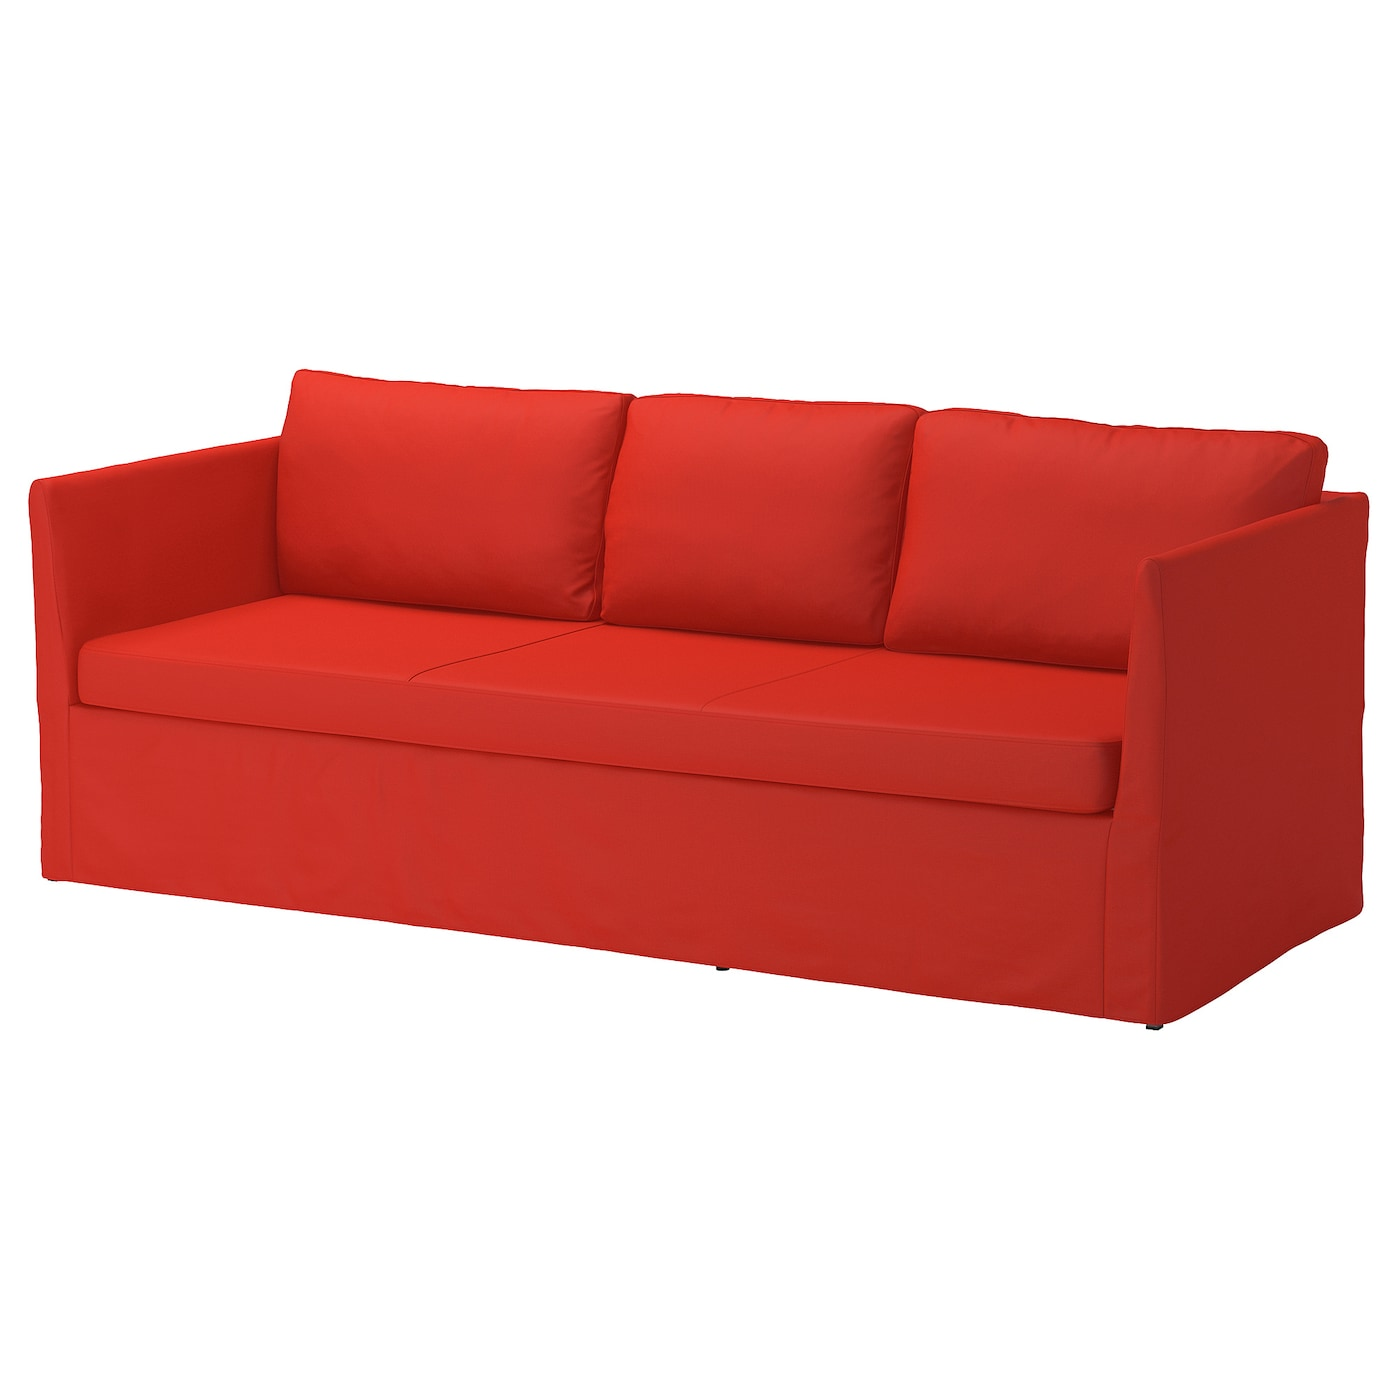 ikea orange sofa stockholm sofa seglora natural ikea thesofa. Black Bedroom Furniture Sets. Home Design Ideas